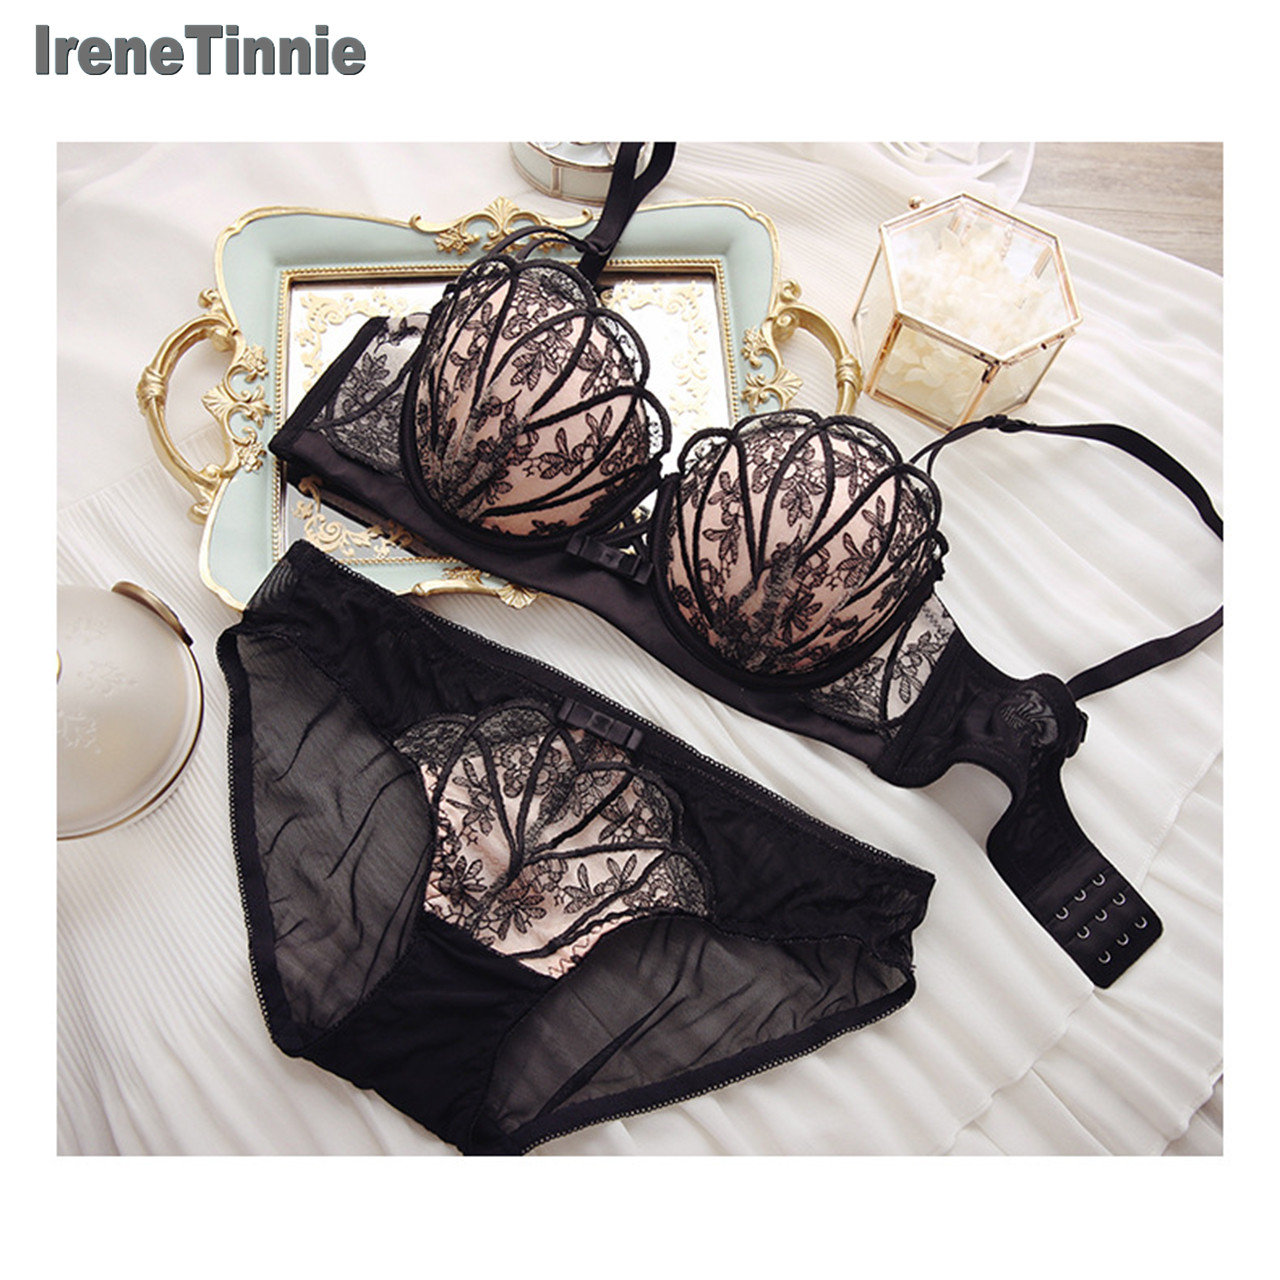 Irene Tinnie lingerie set thin embroidery push up bra set sexy lace underwear set Floral bras for women bra and panty set